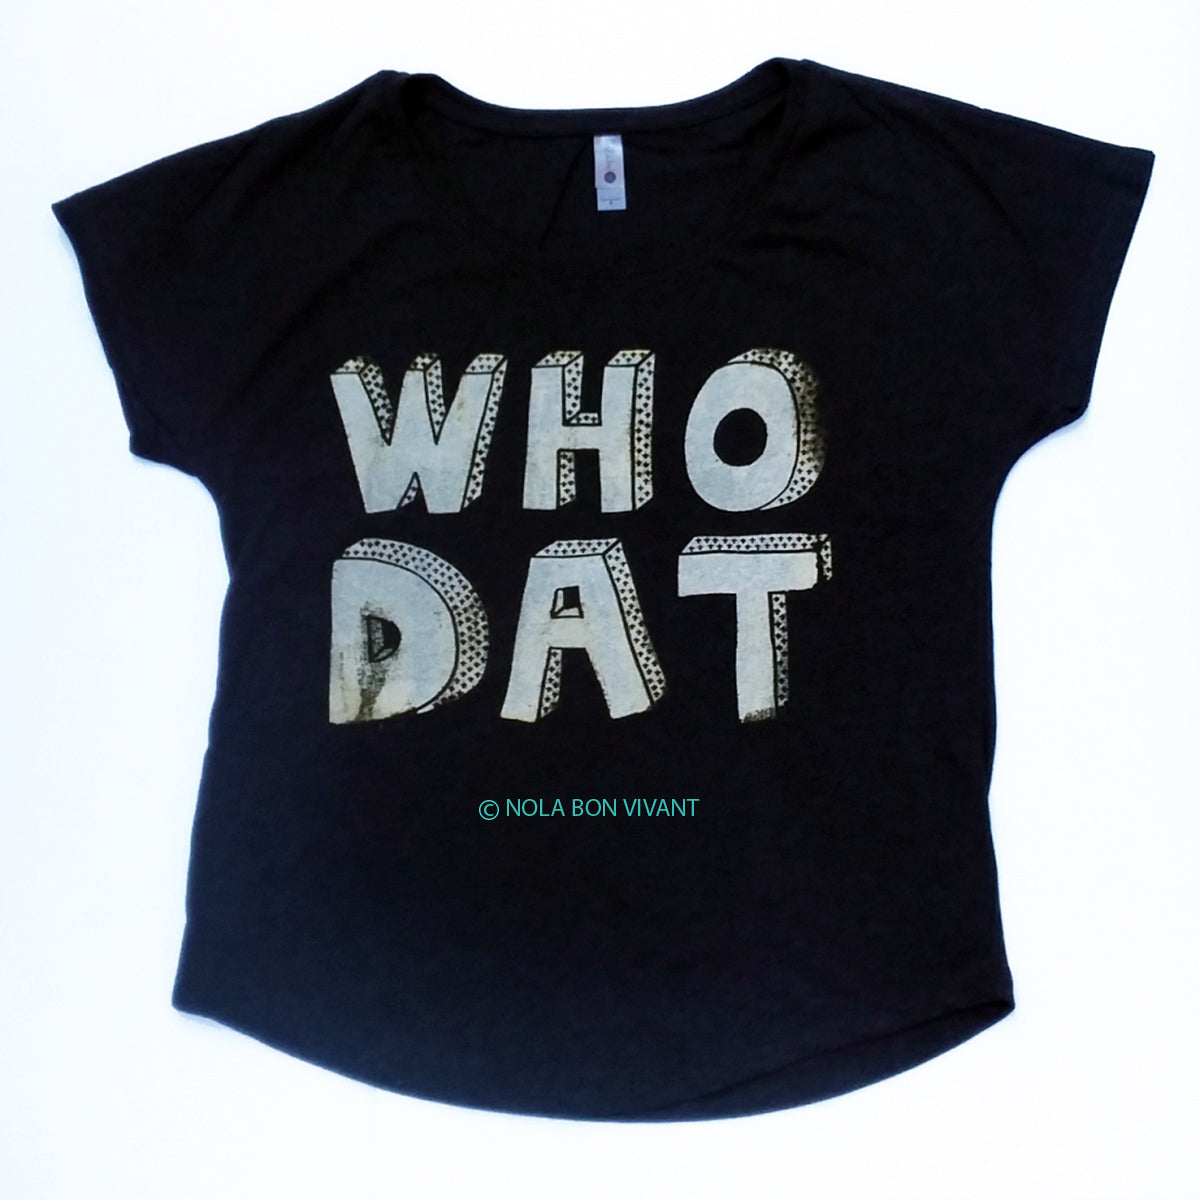 WHO DAT tee, black and gold, New Orleans Saints, Football Tee, ladies, dolman, free shipping